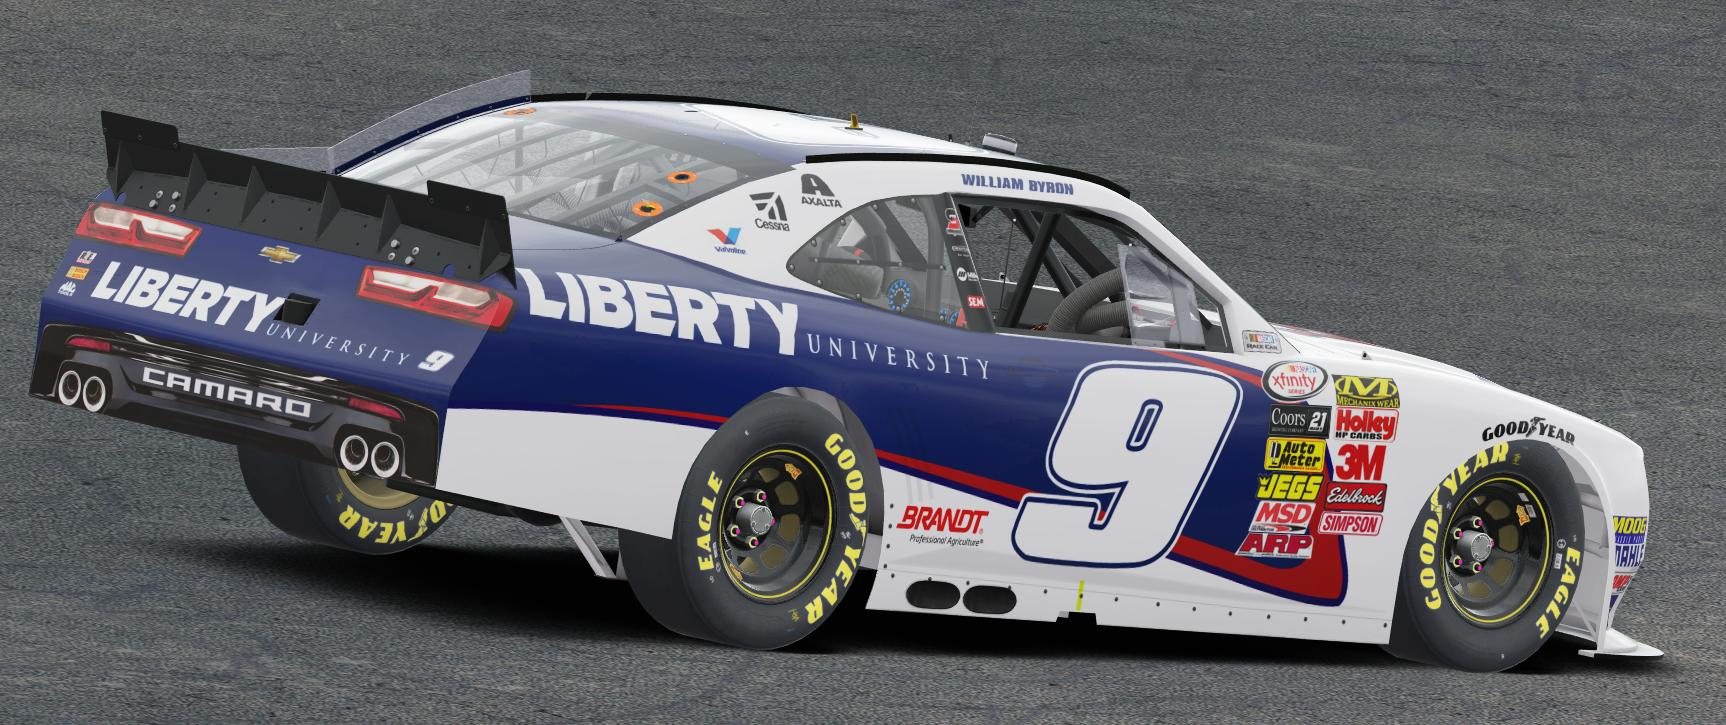 Preview of 2017 William Byron Liberty University Camaro by Preston Pardus